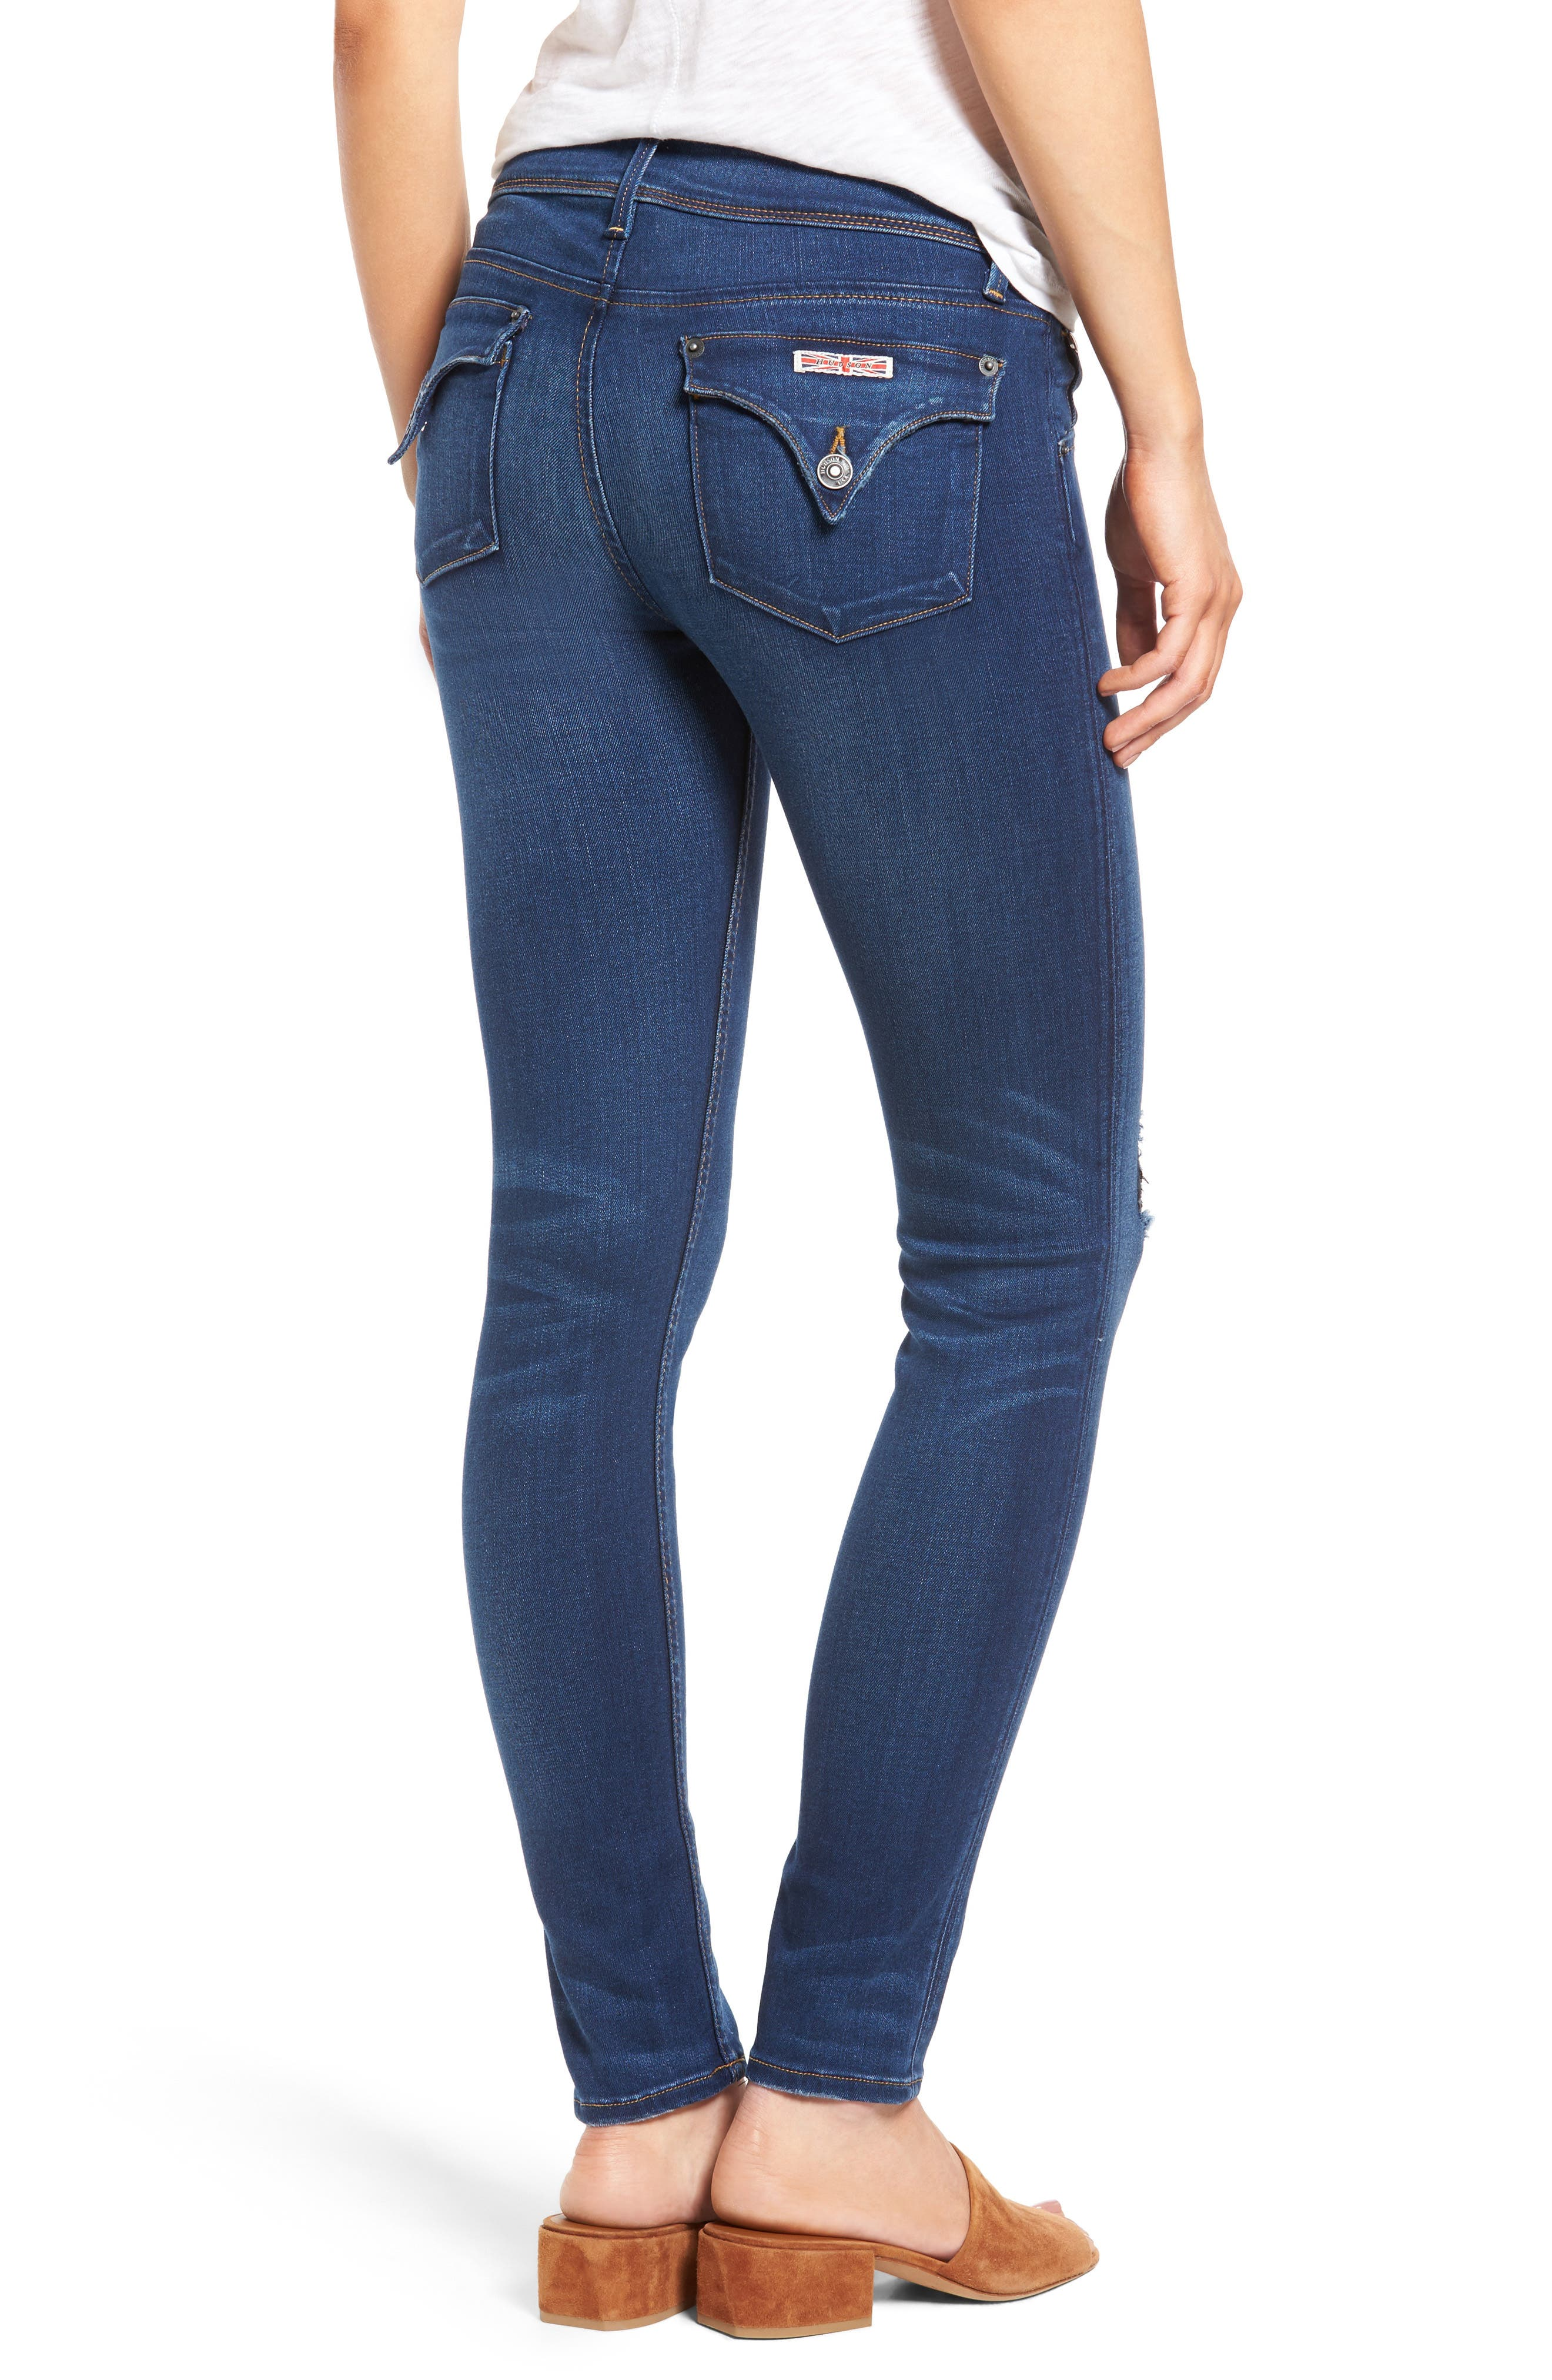 Alternate Image 2  - Hudson Jeans 'Elysian - Collin' Mid Rise Skinny Jeans (Authentic)